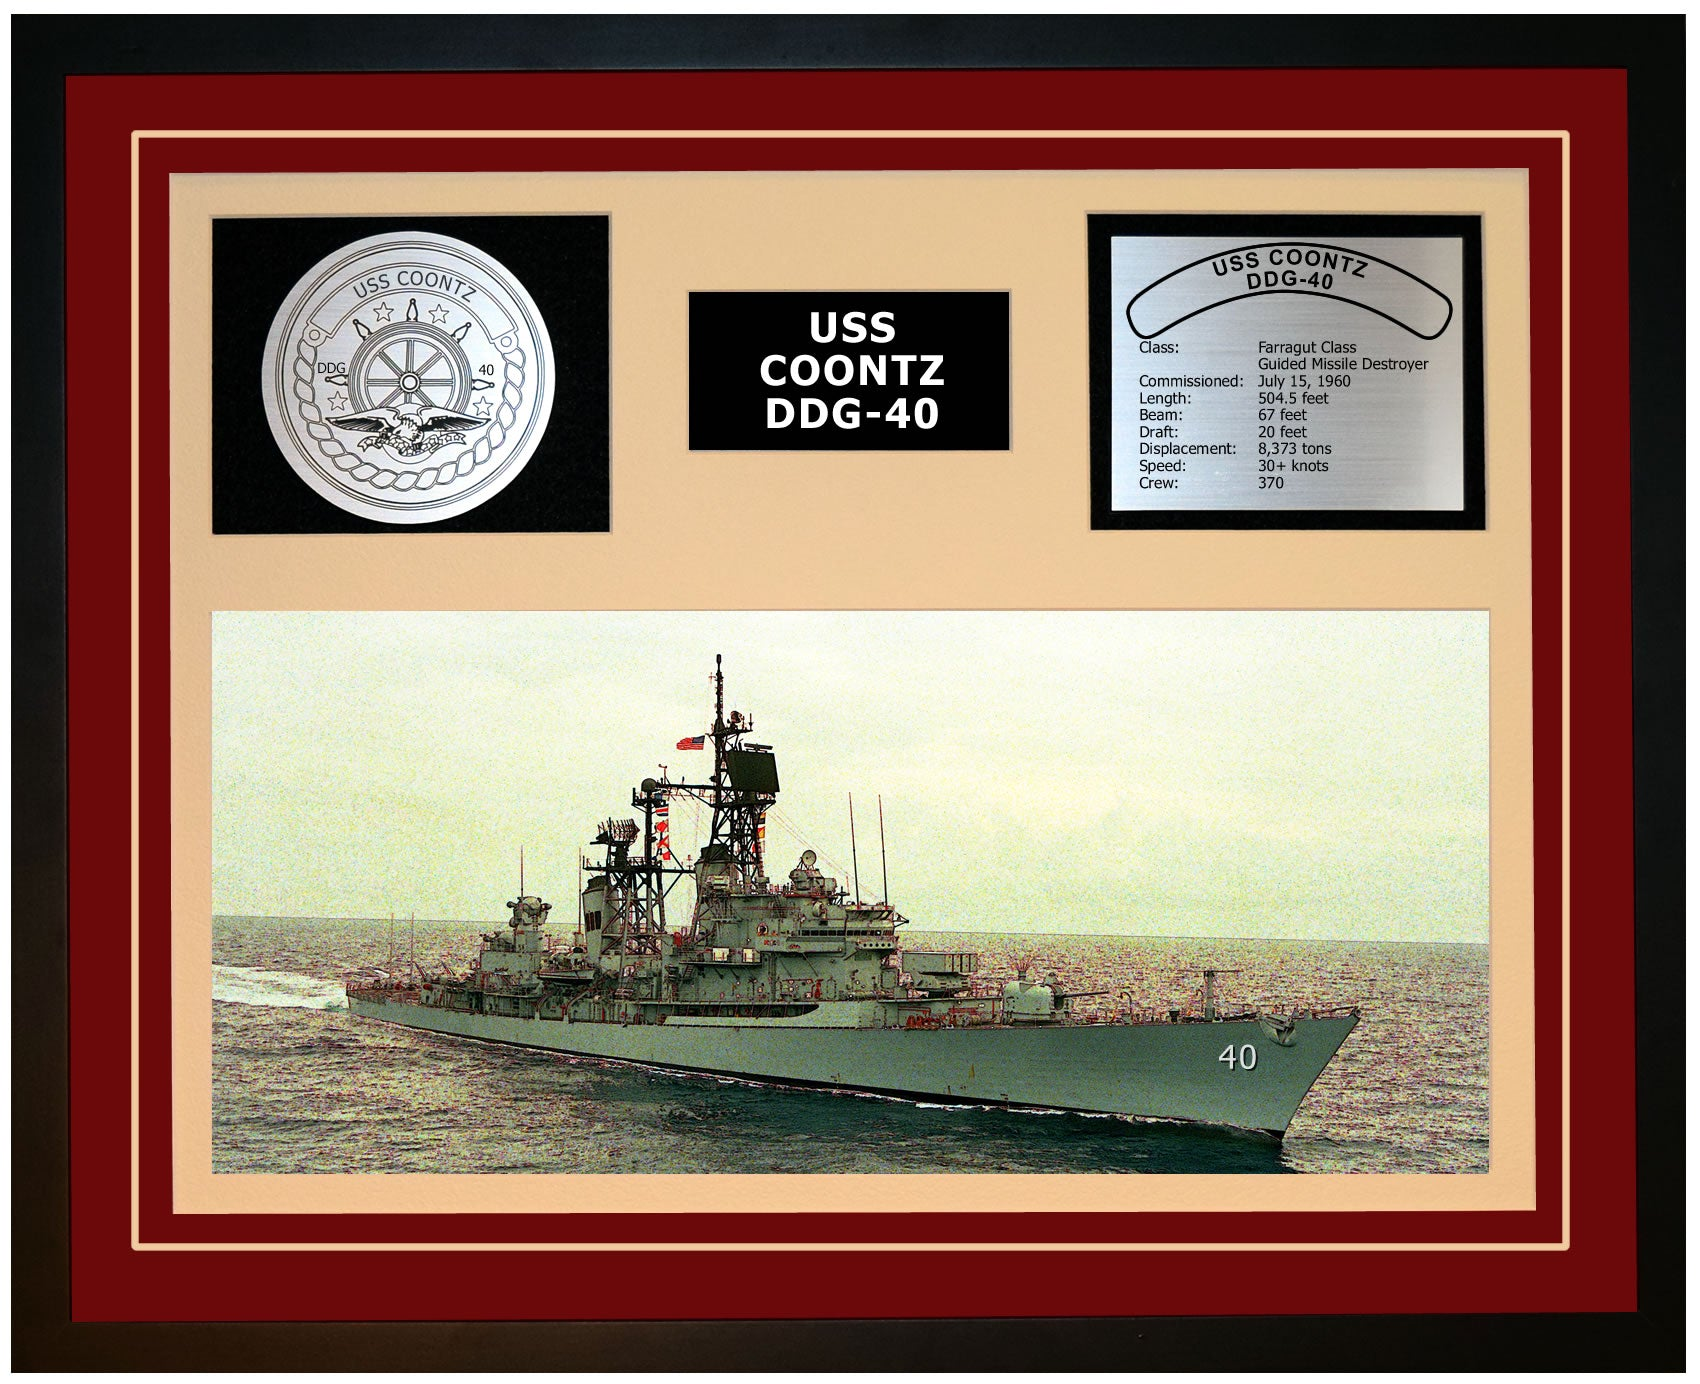 USS COONTZ DDG-40 Framed Navy Ship Display Burgundy